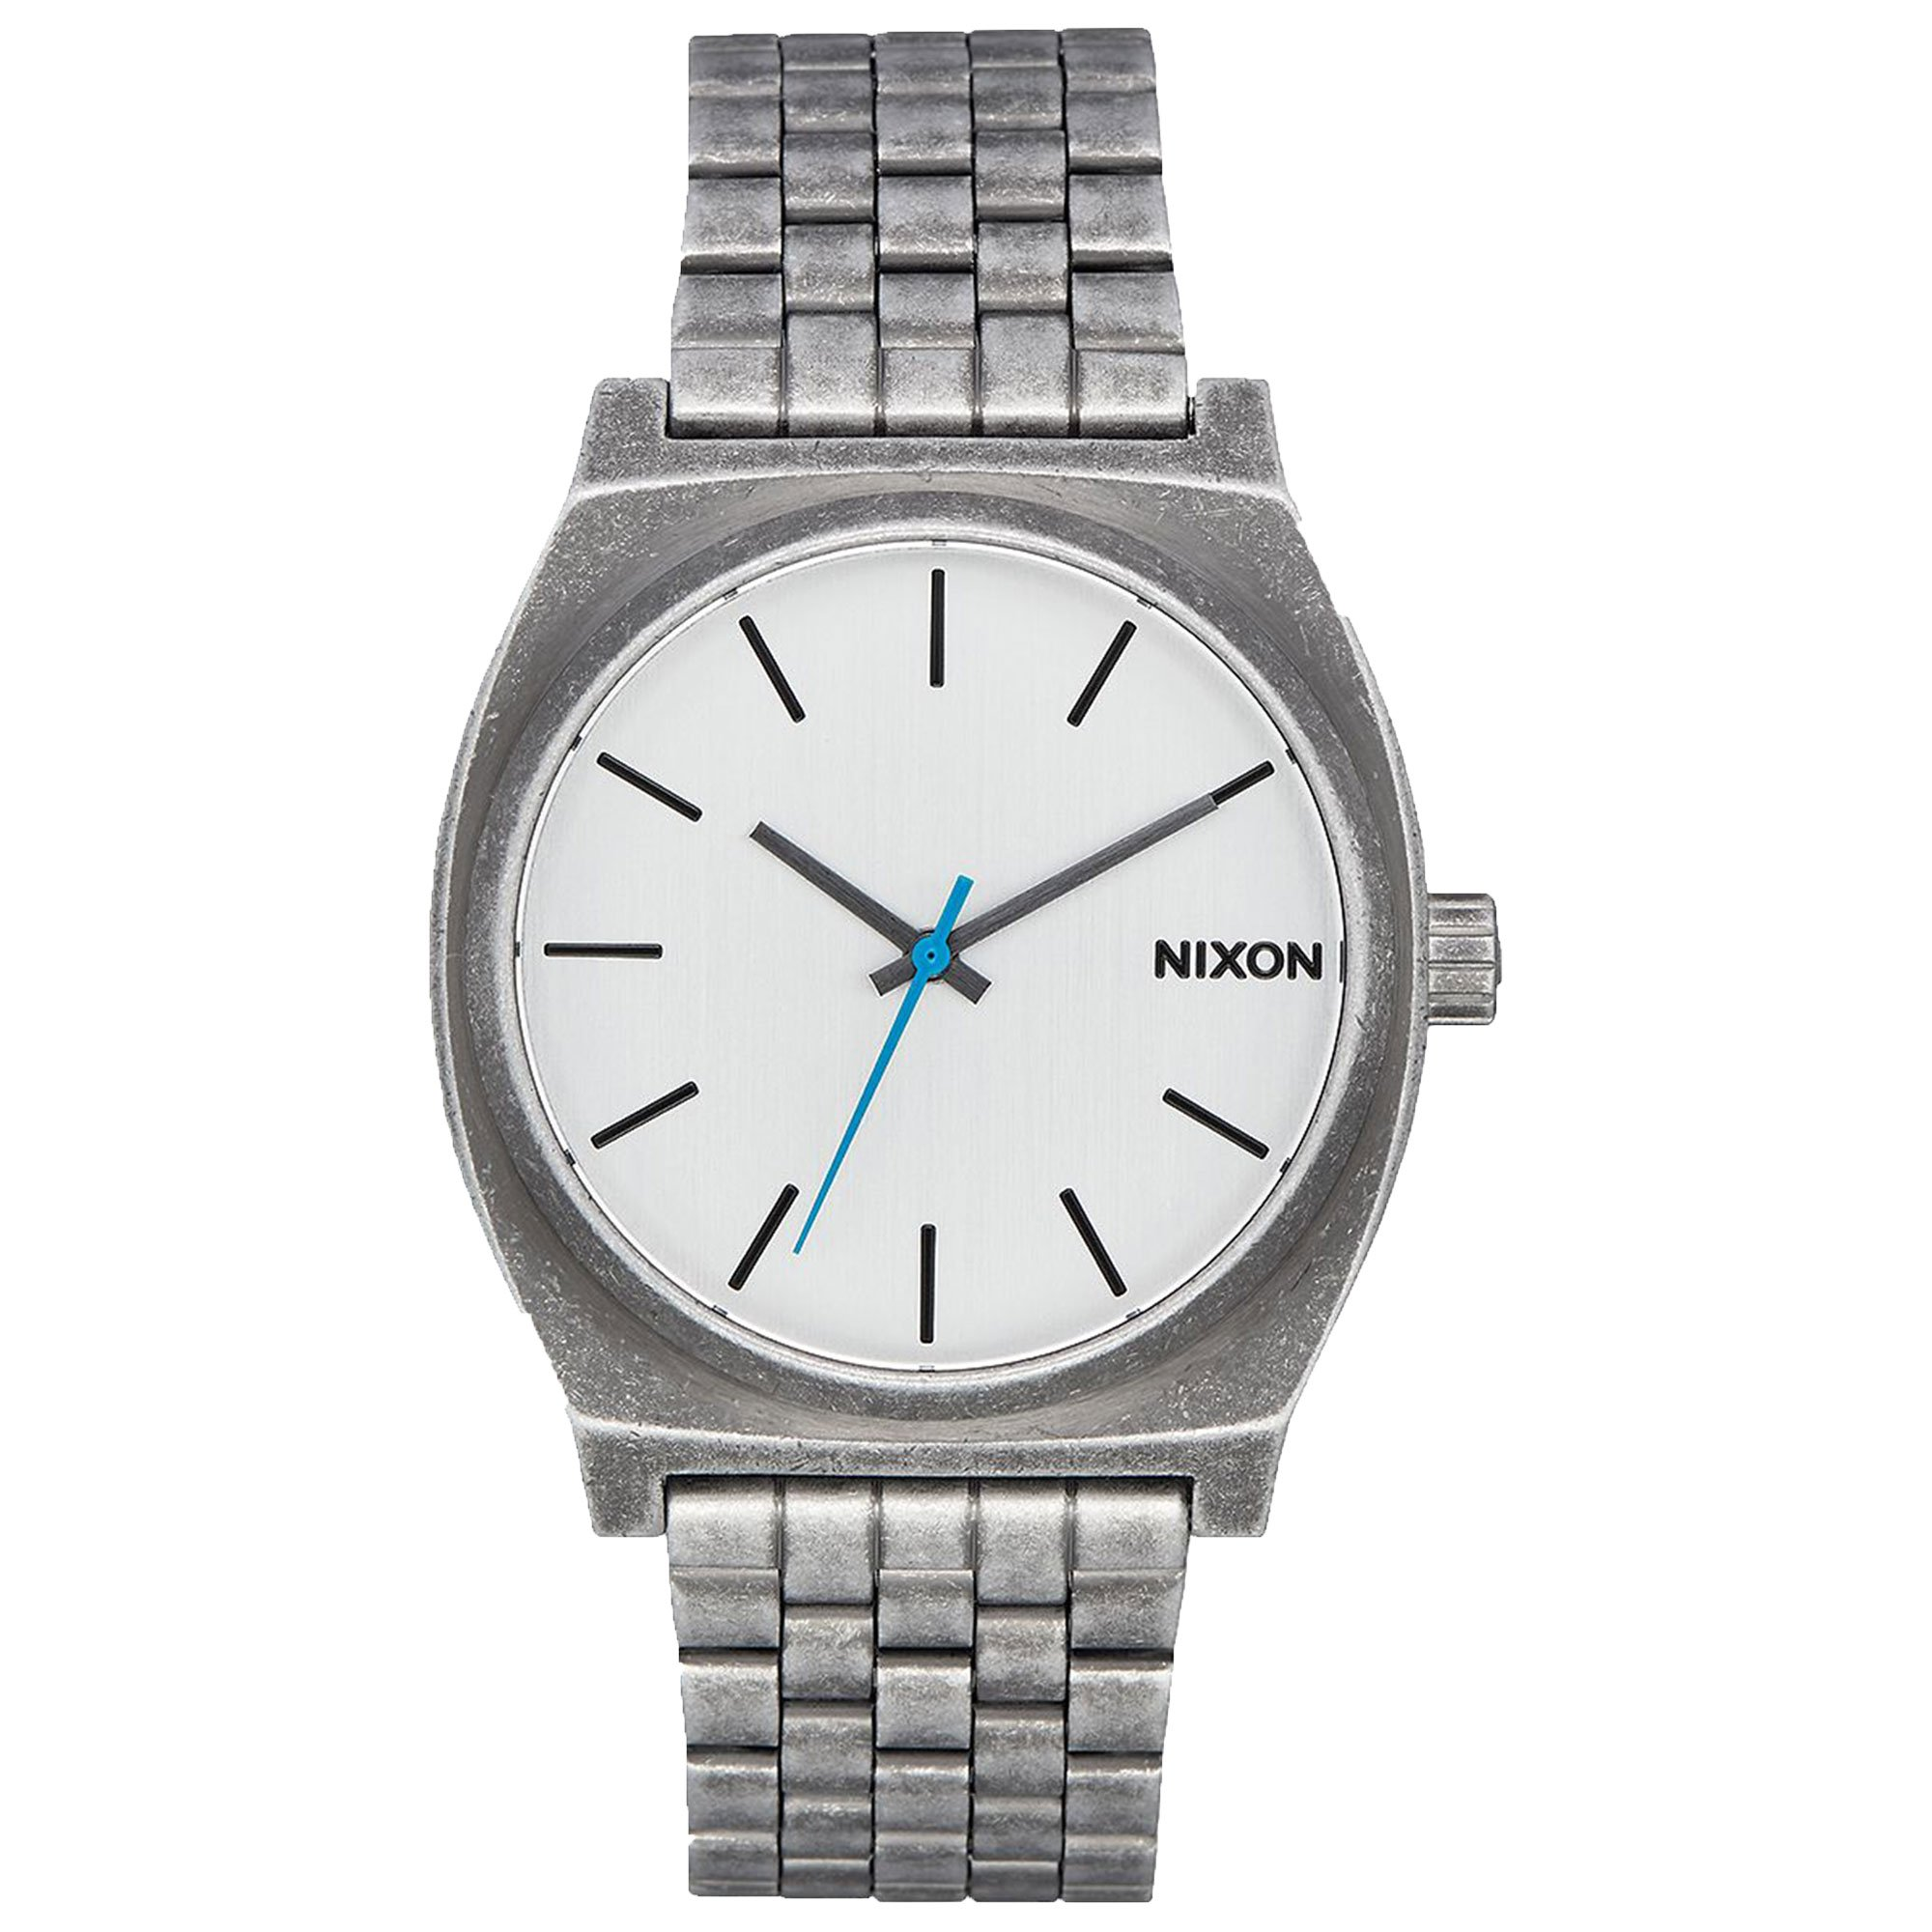 Nixon Time Teller , 37 mm mens watches A045-2701 - Silver / Antique